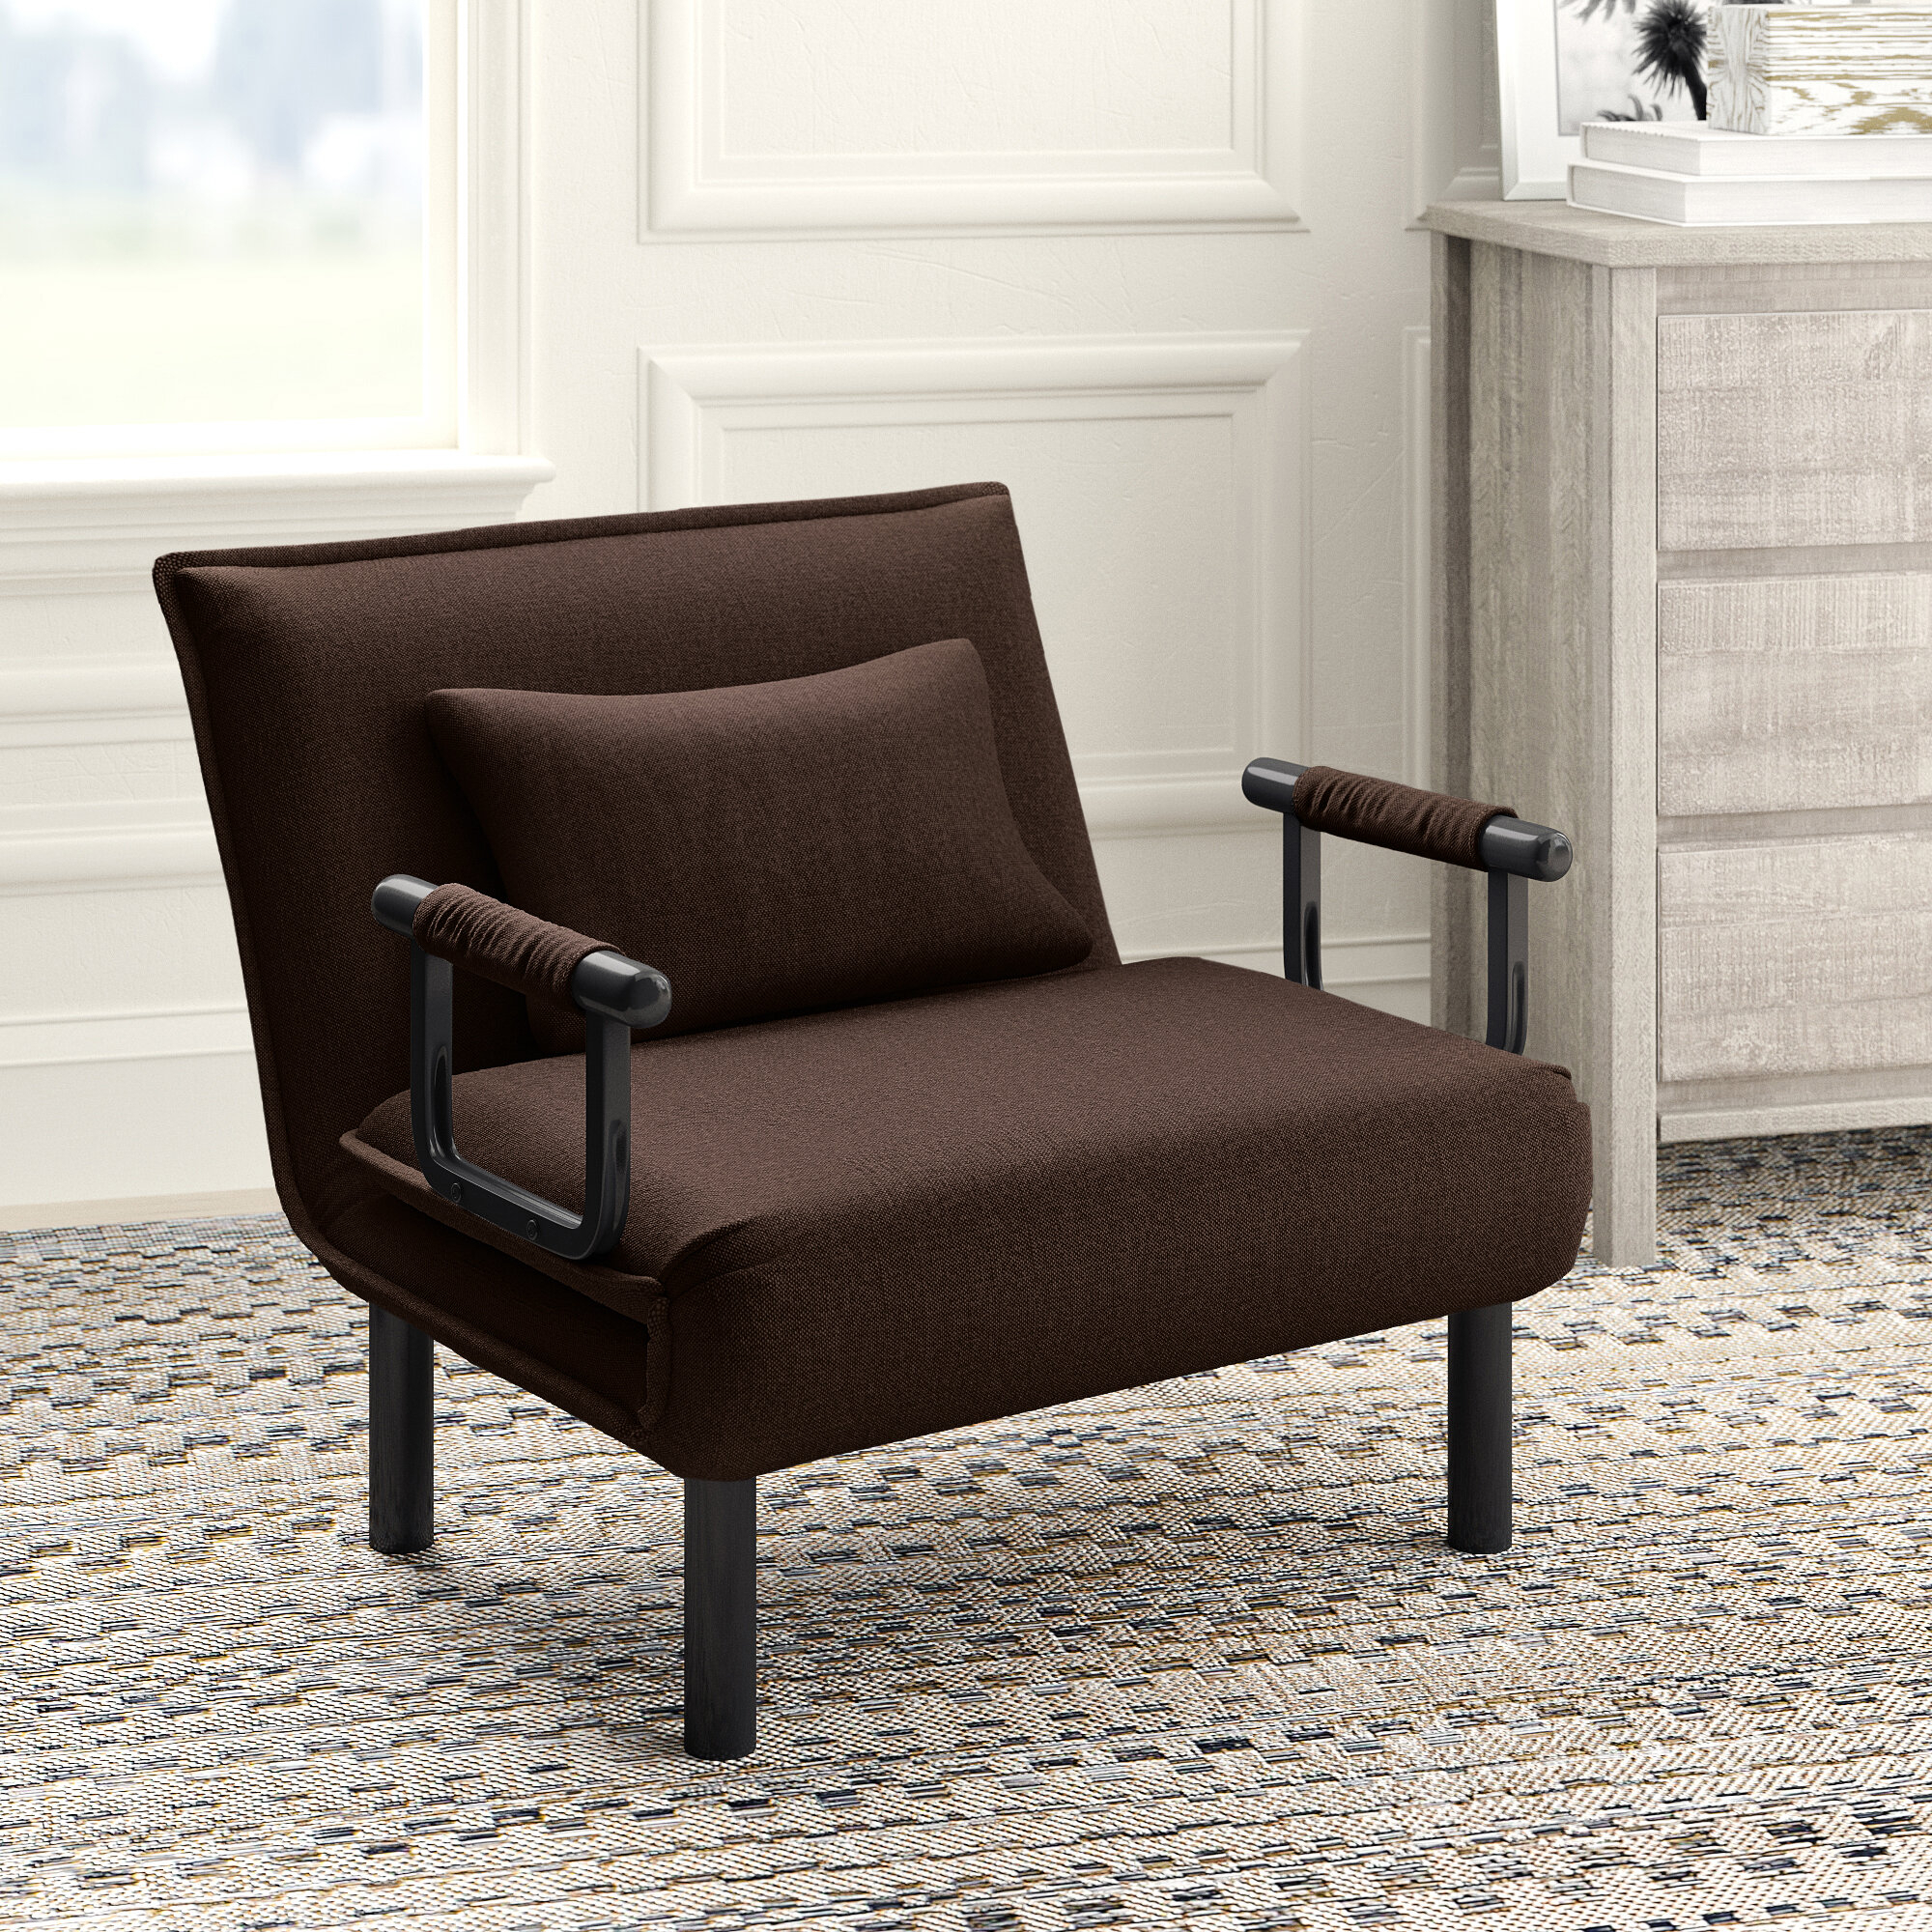 Springdale Convertible Chair For Perz Tufted Faux Leather Convertible Chairs (View 8 of 15)